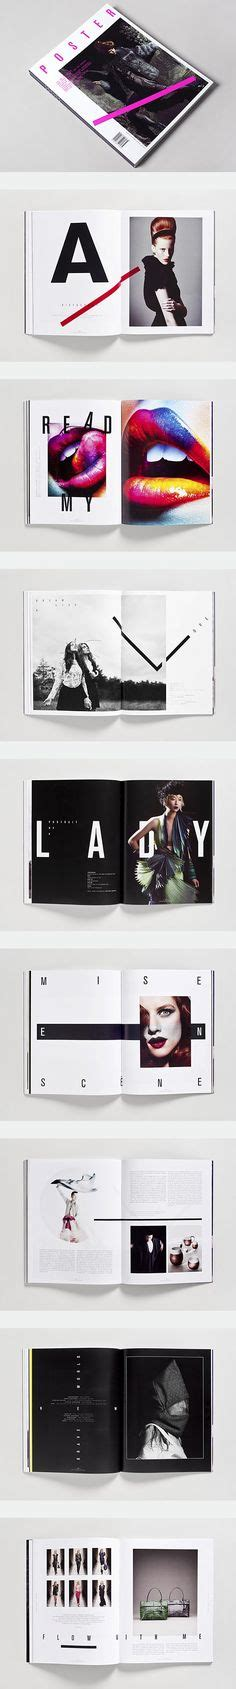 layout toko fashion 1000 images about look book on pinterest 1920s african